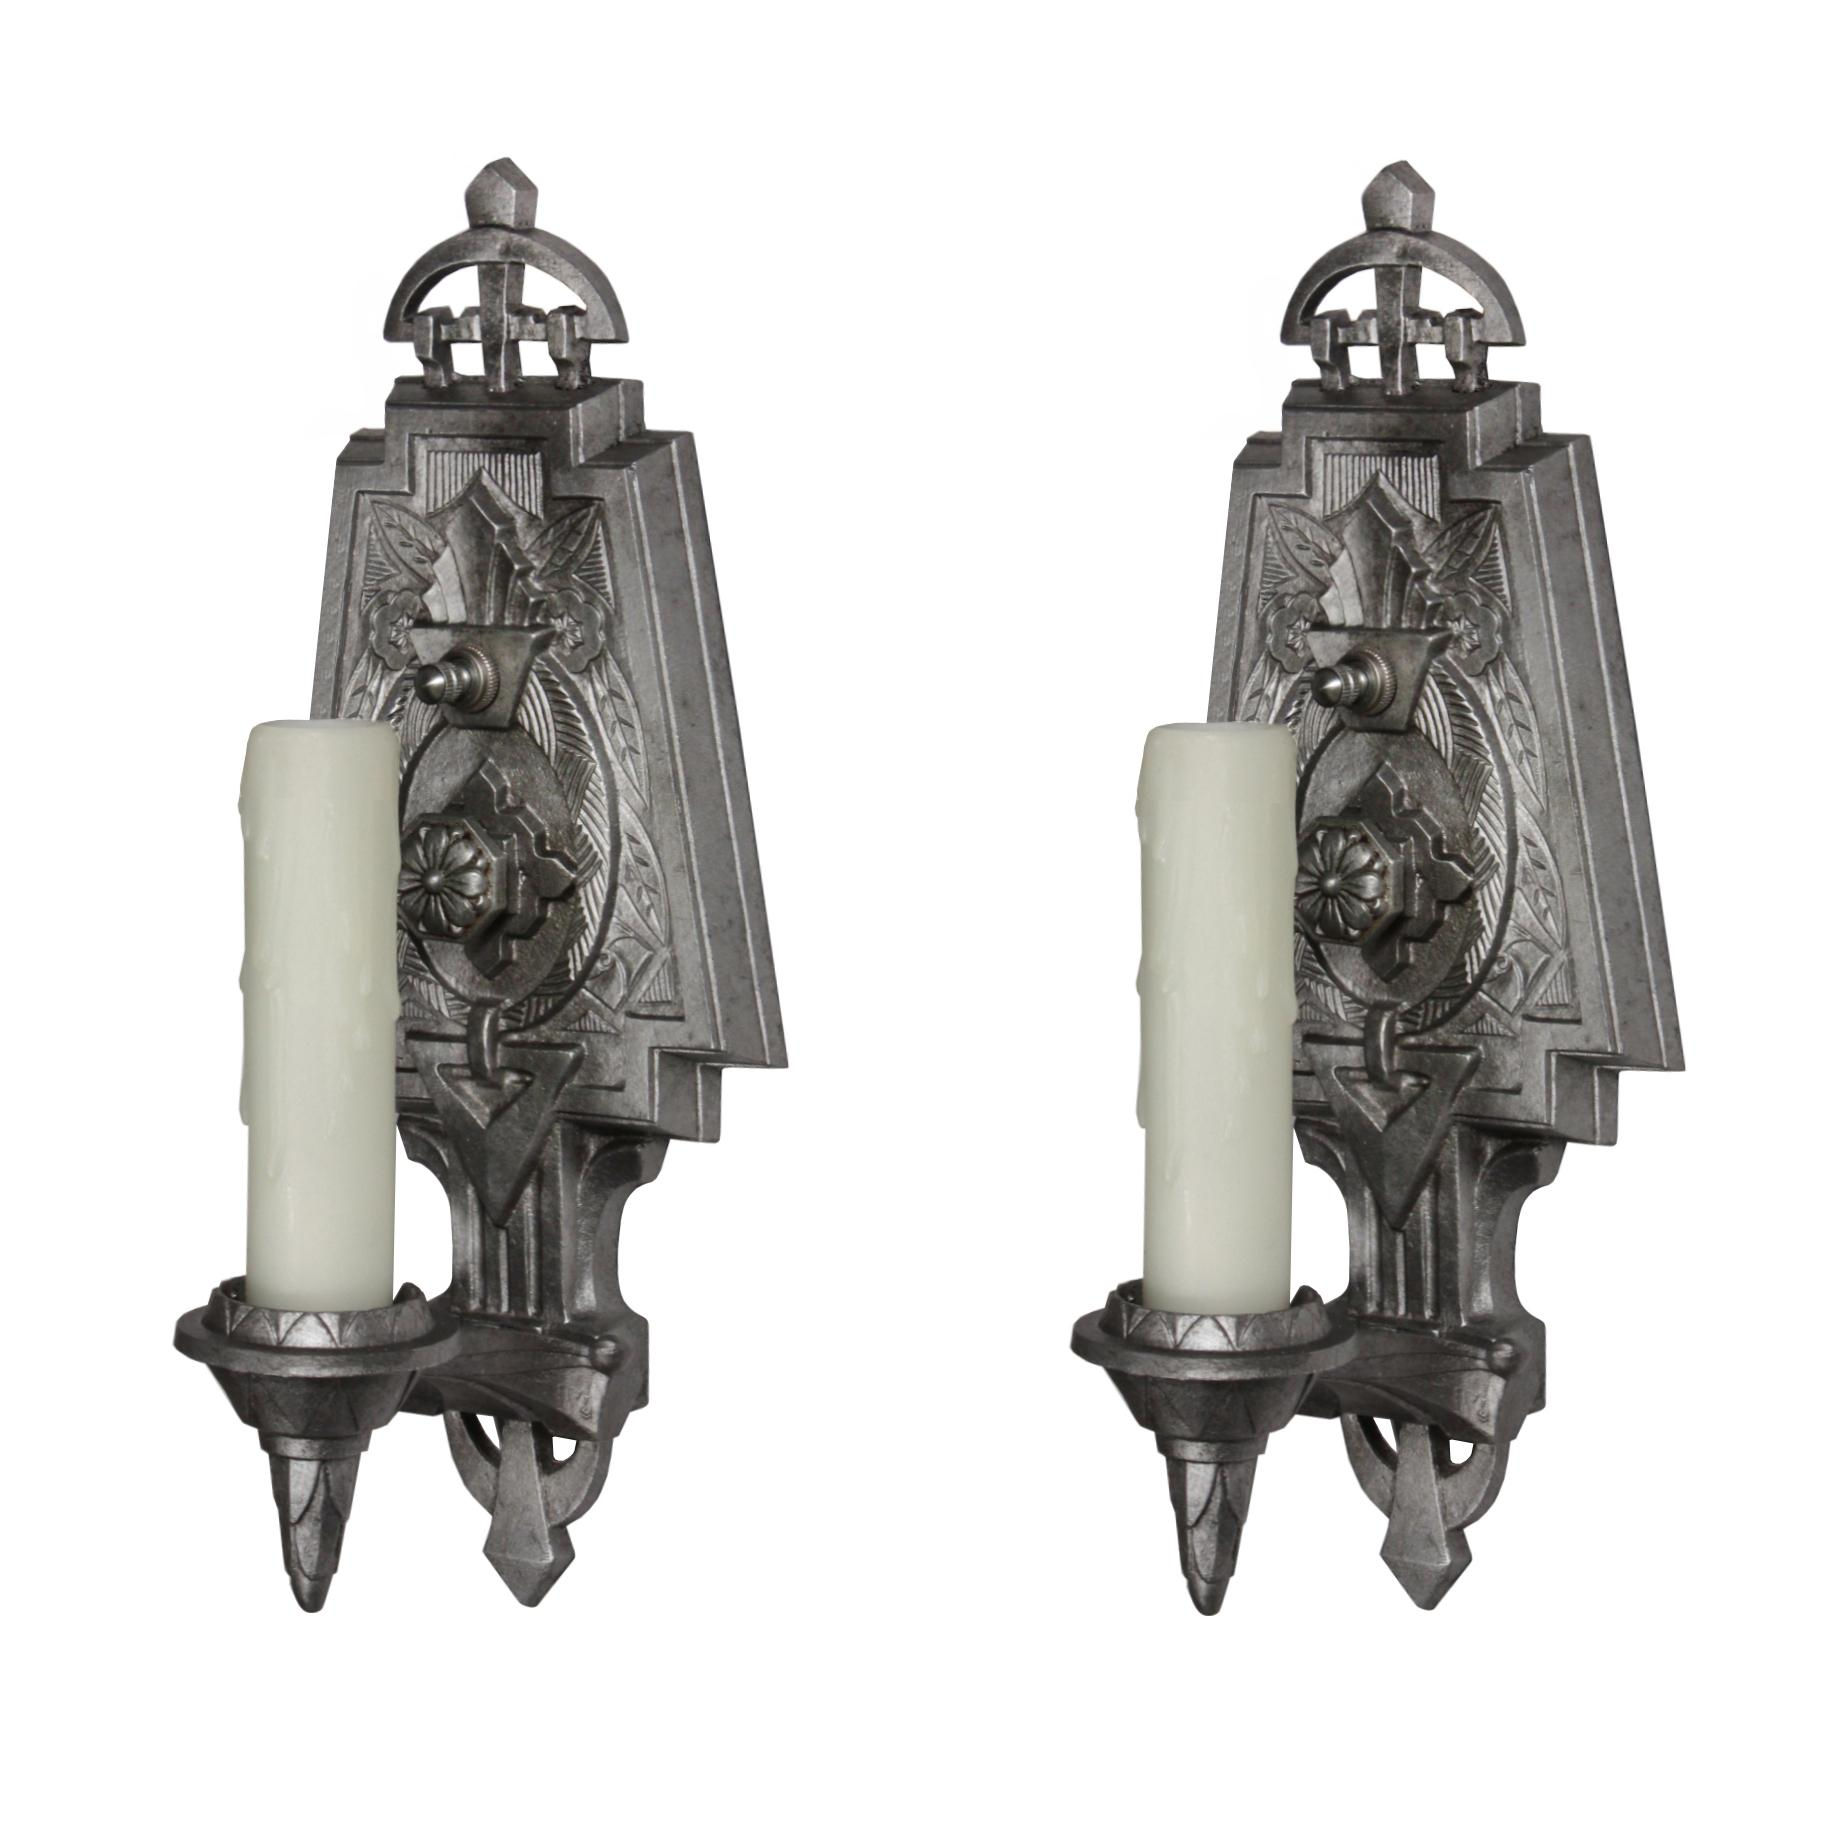 Fabulous Pair of Antique Art Deco Single-Arm Sconces by Lincoln